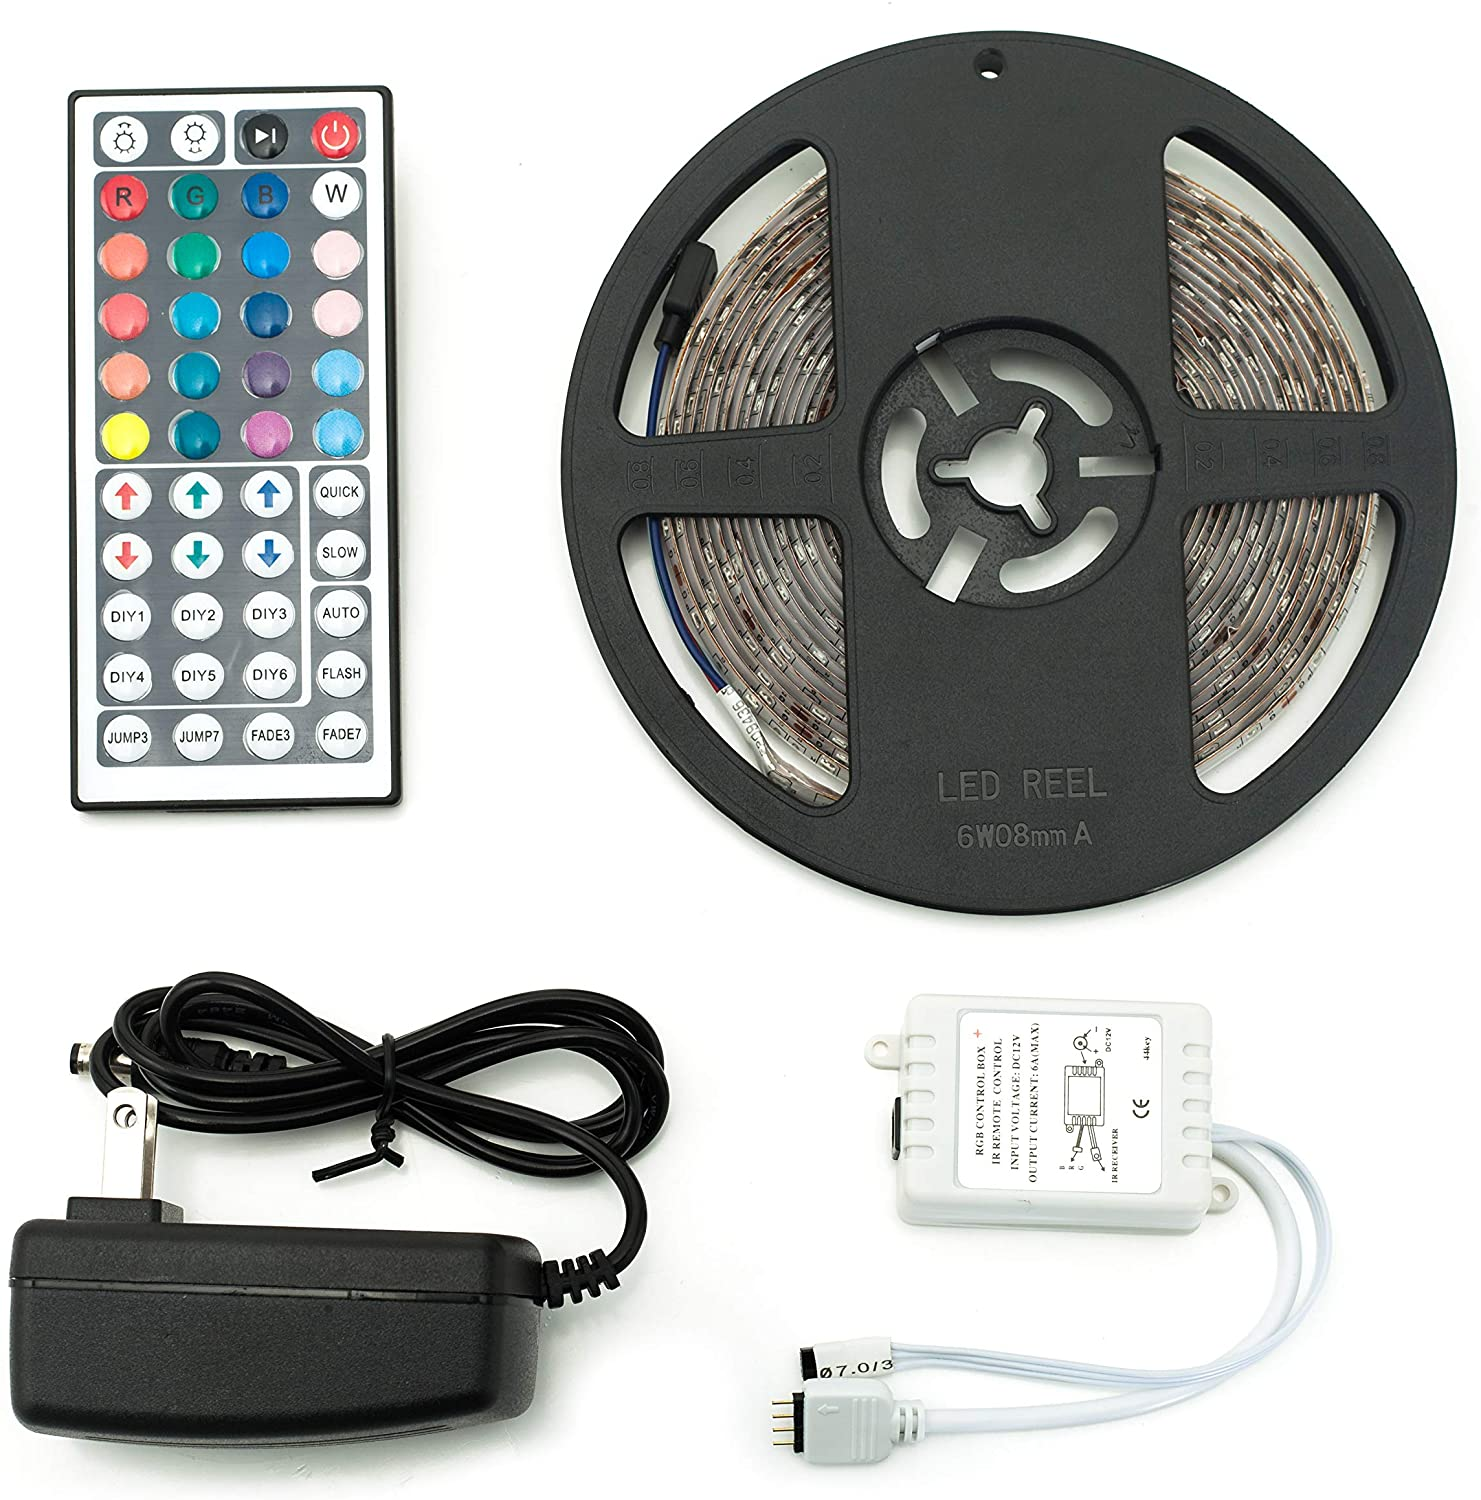 16 Feet Multi-Color LED Light Strip with Remote Control